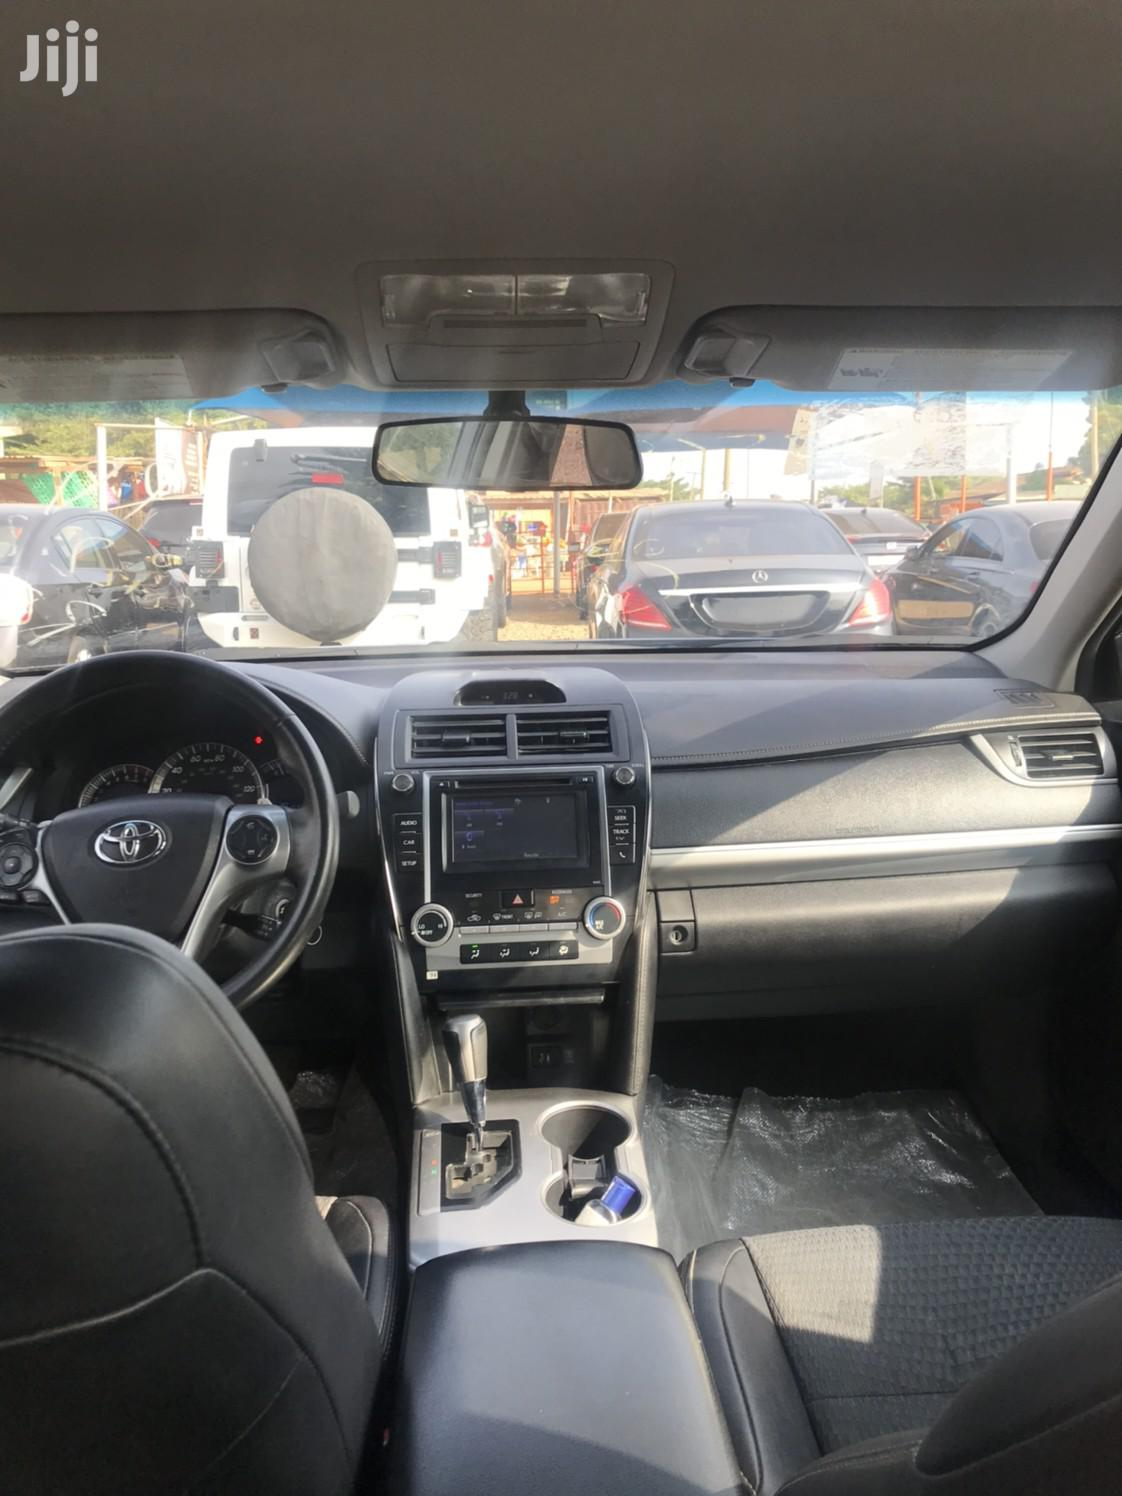 Toyota Camry 2014 | Cars for sale in East Legon, Greater Accra, Ghana